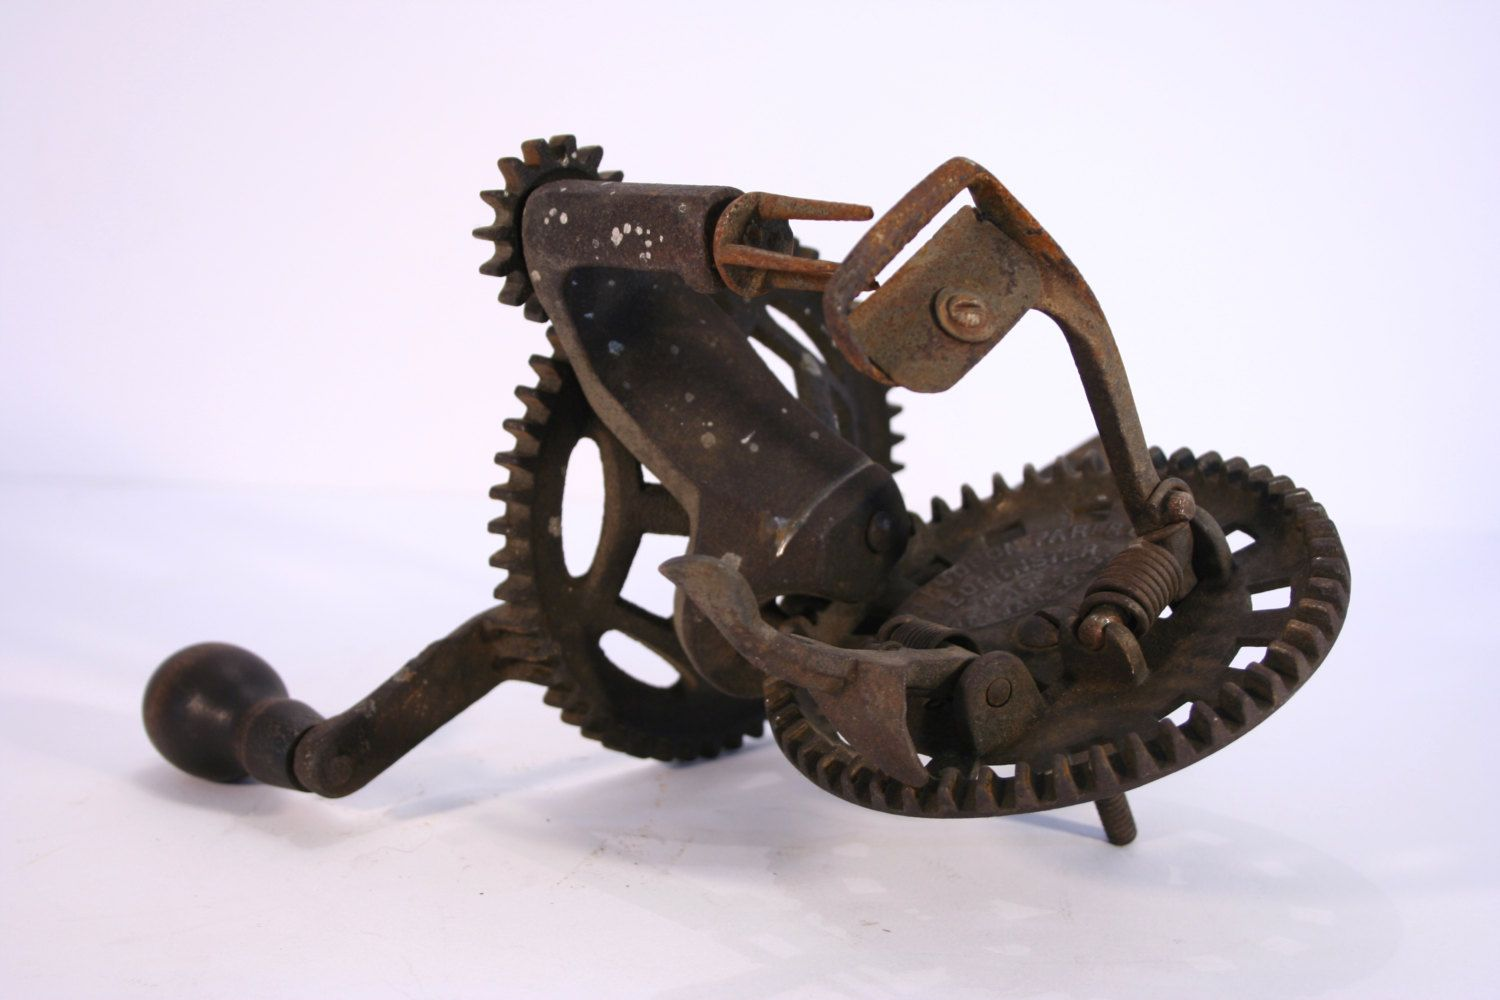 Antique Apple Peeler -- Hudson Parer Company -- 19th Century Tools -- Antique Tools -- Gift for Him -- Cabin Decor -- BA1400 by Revendeur on Etsy